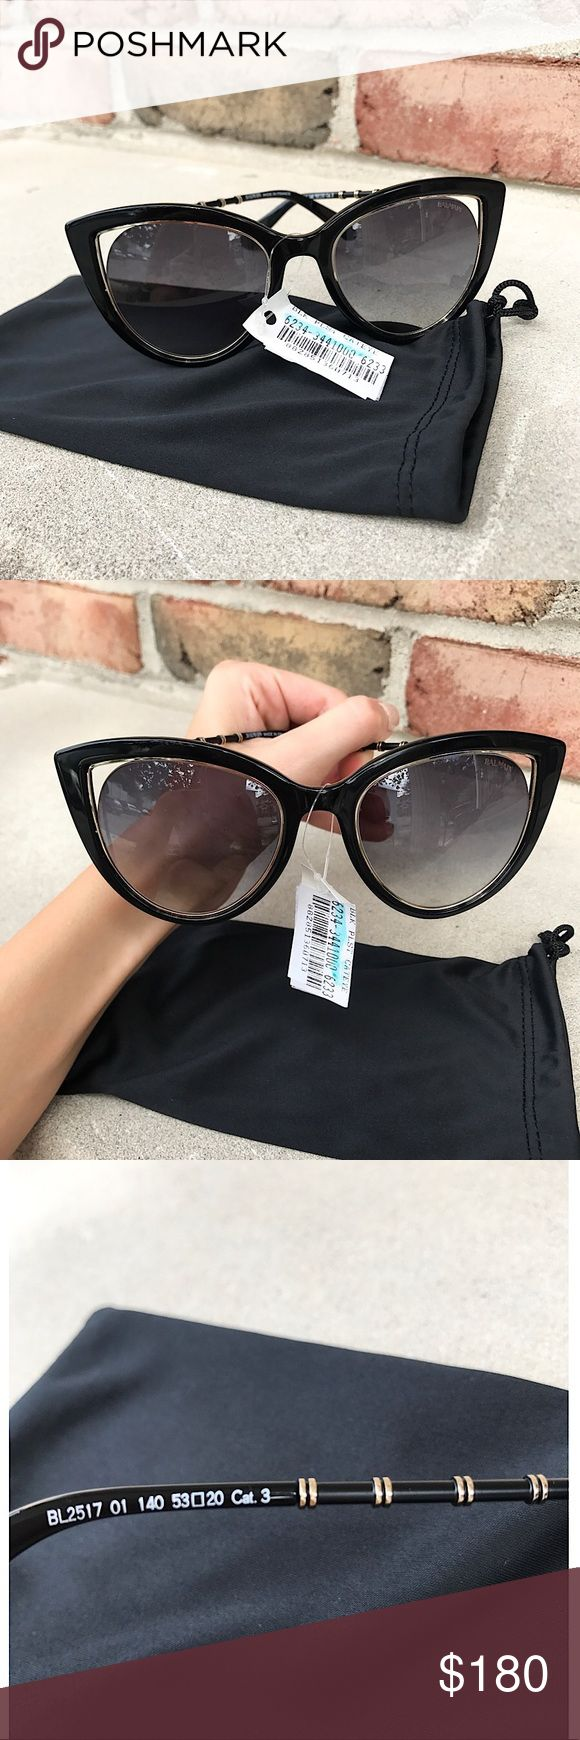 Balmain Sunglasses 😎 Glossy black rims, cat eye frames, cutout lenses, gold-tone trim, saddle nose bridge, integrated nose pads. Logo lettering at temples, tinted lenses, tonal metal arms with gold-tone ring detail, 100% UV protection 53mm lens width, 20mm bridge width, 120mm temple length Acetate/Metal Made in France BRAND NEW WITH TAG!!! Balmain Accessories Sunglasses